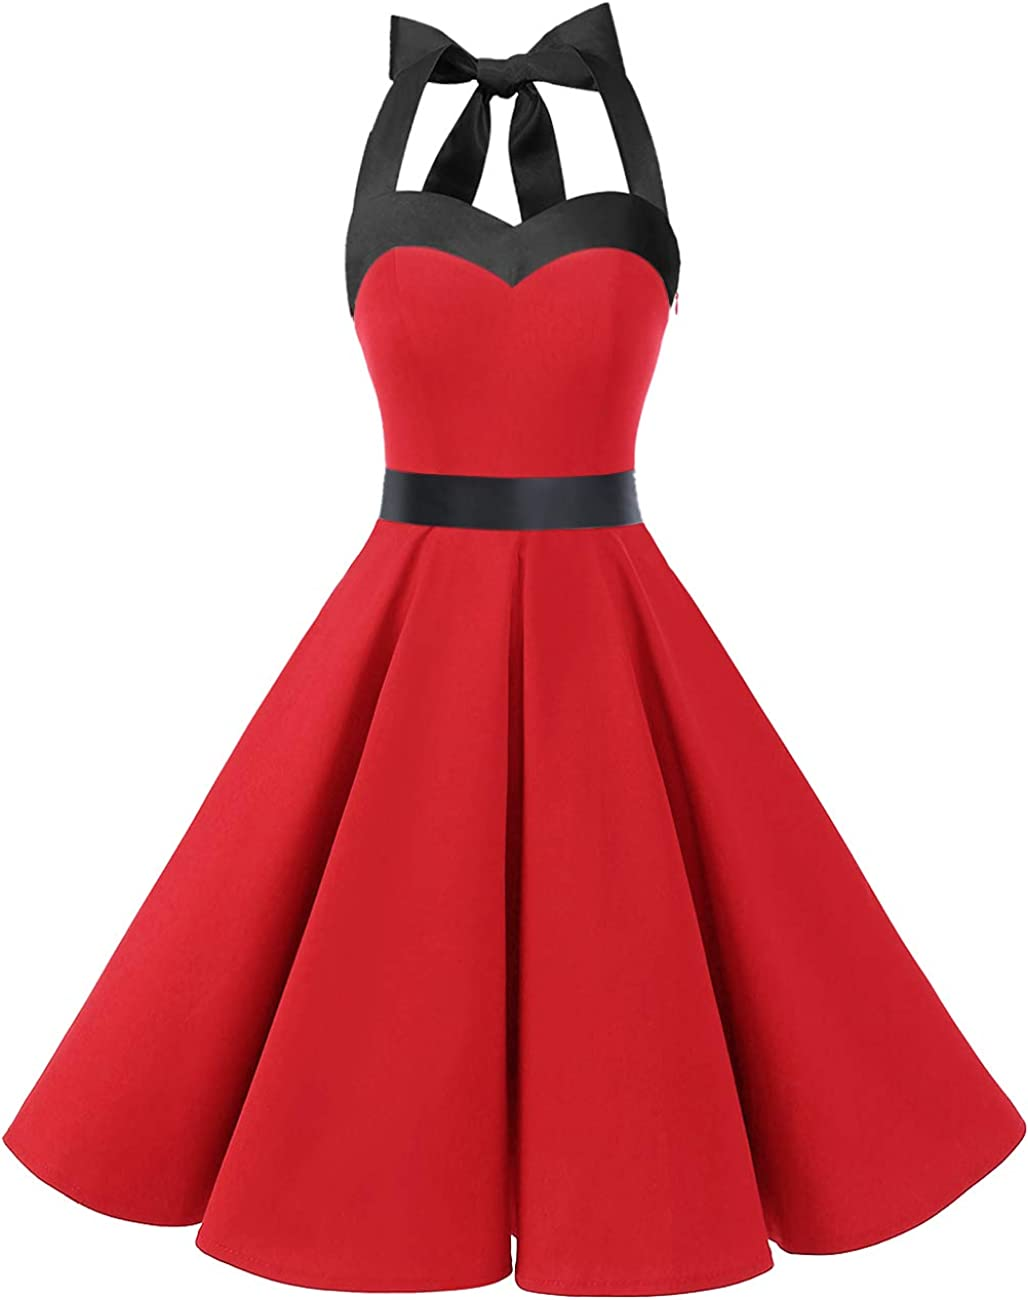 TALLA L. Dresstells® Halter 50s Rockabilly Polka Dots Audrey Dress Retro Cocktail Dress Red Black L